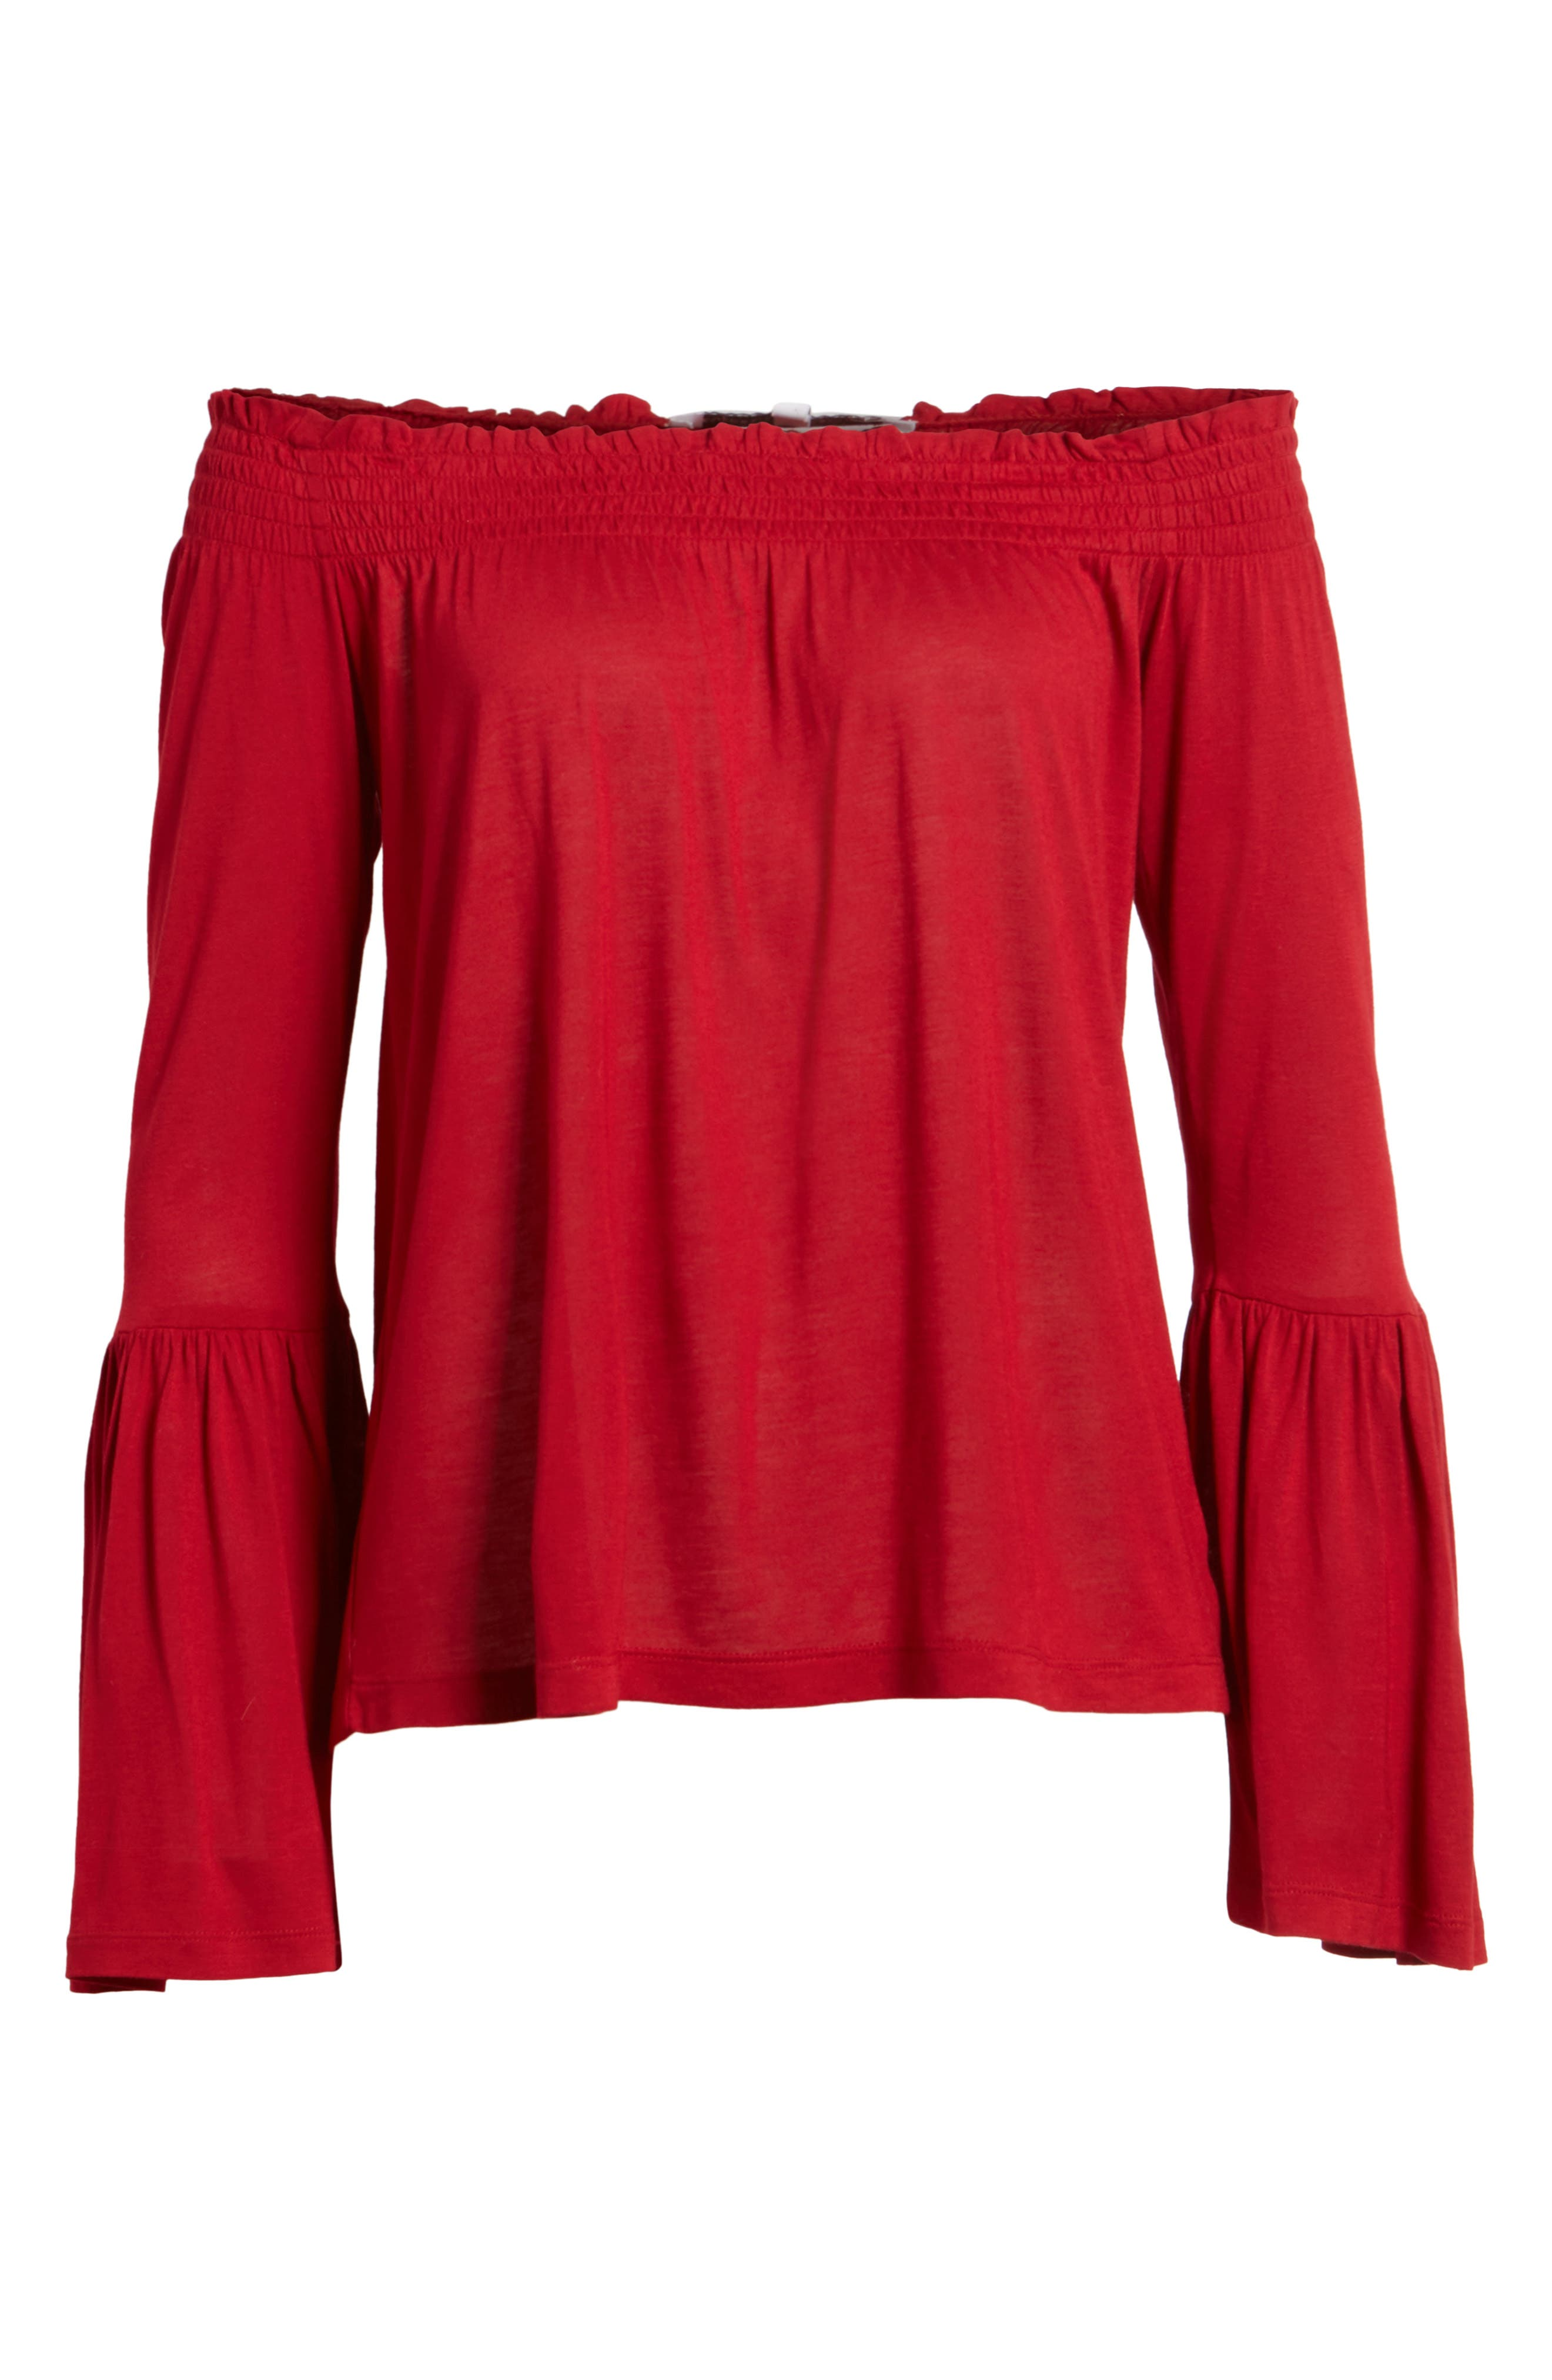 Luck Off the Shoulder Top,                             Alternate thumbnail 6, color,                             643